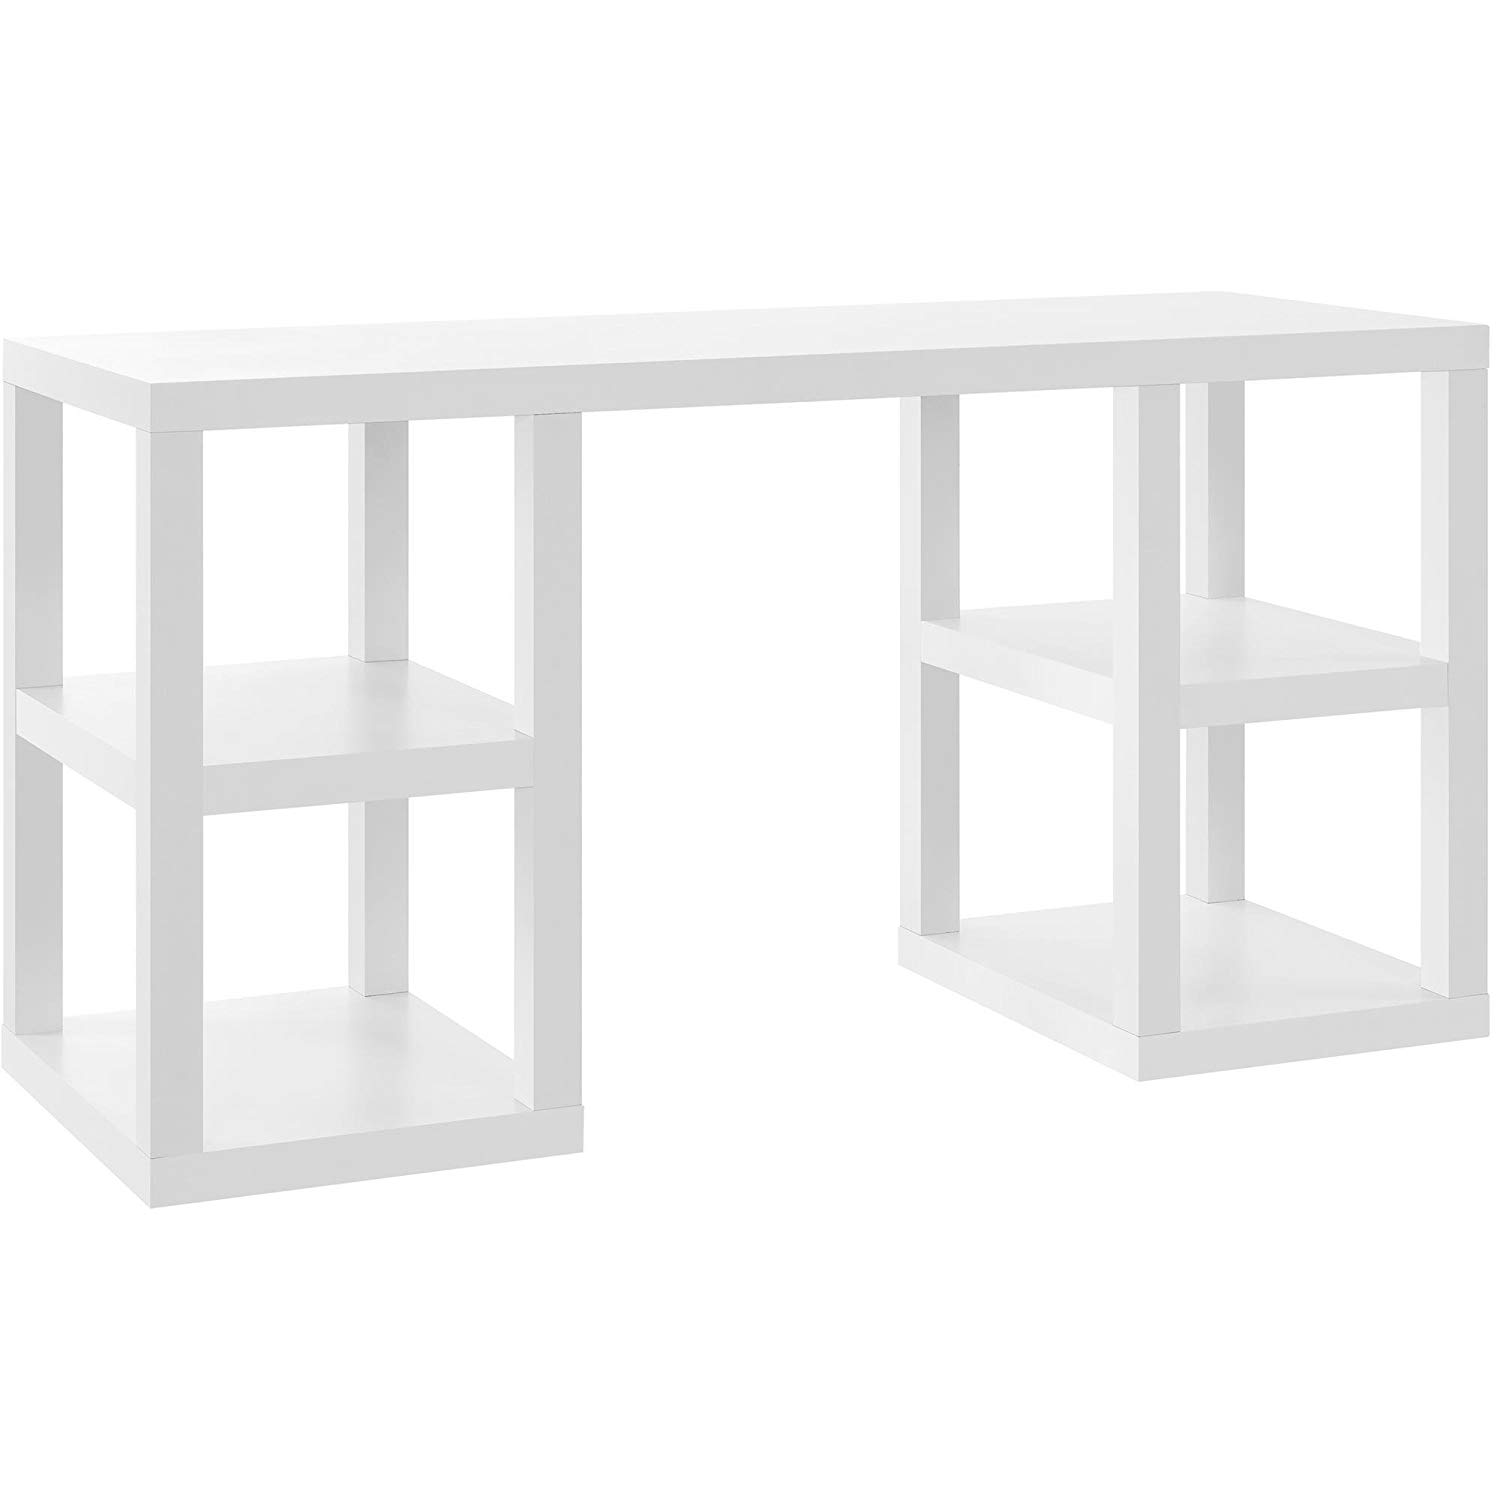 MyEasyShopping Modern & Contemporary Super Classic White Laminate Deluxe Desk Desk Deluxe New Reference Library Set